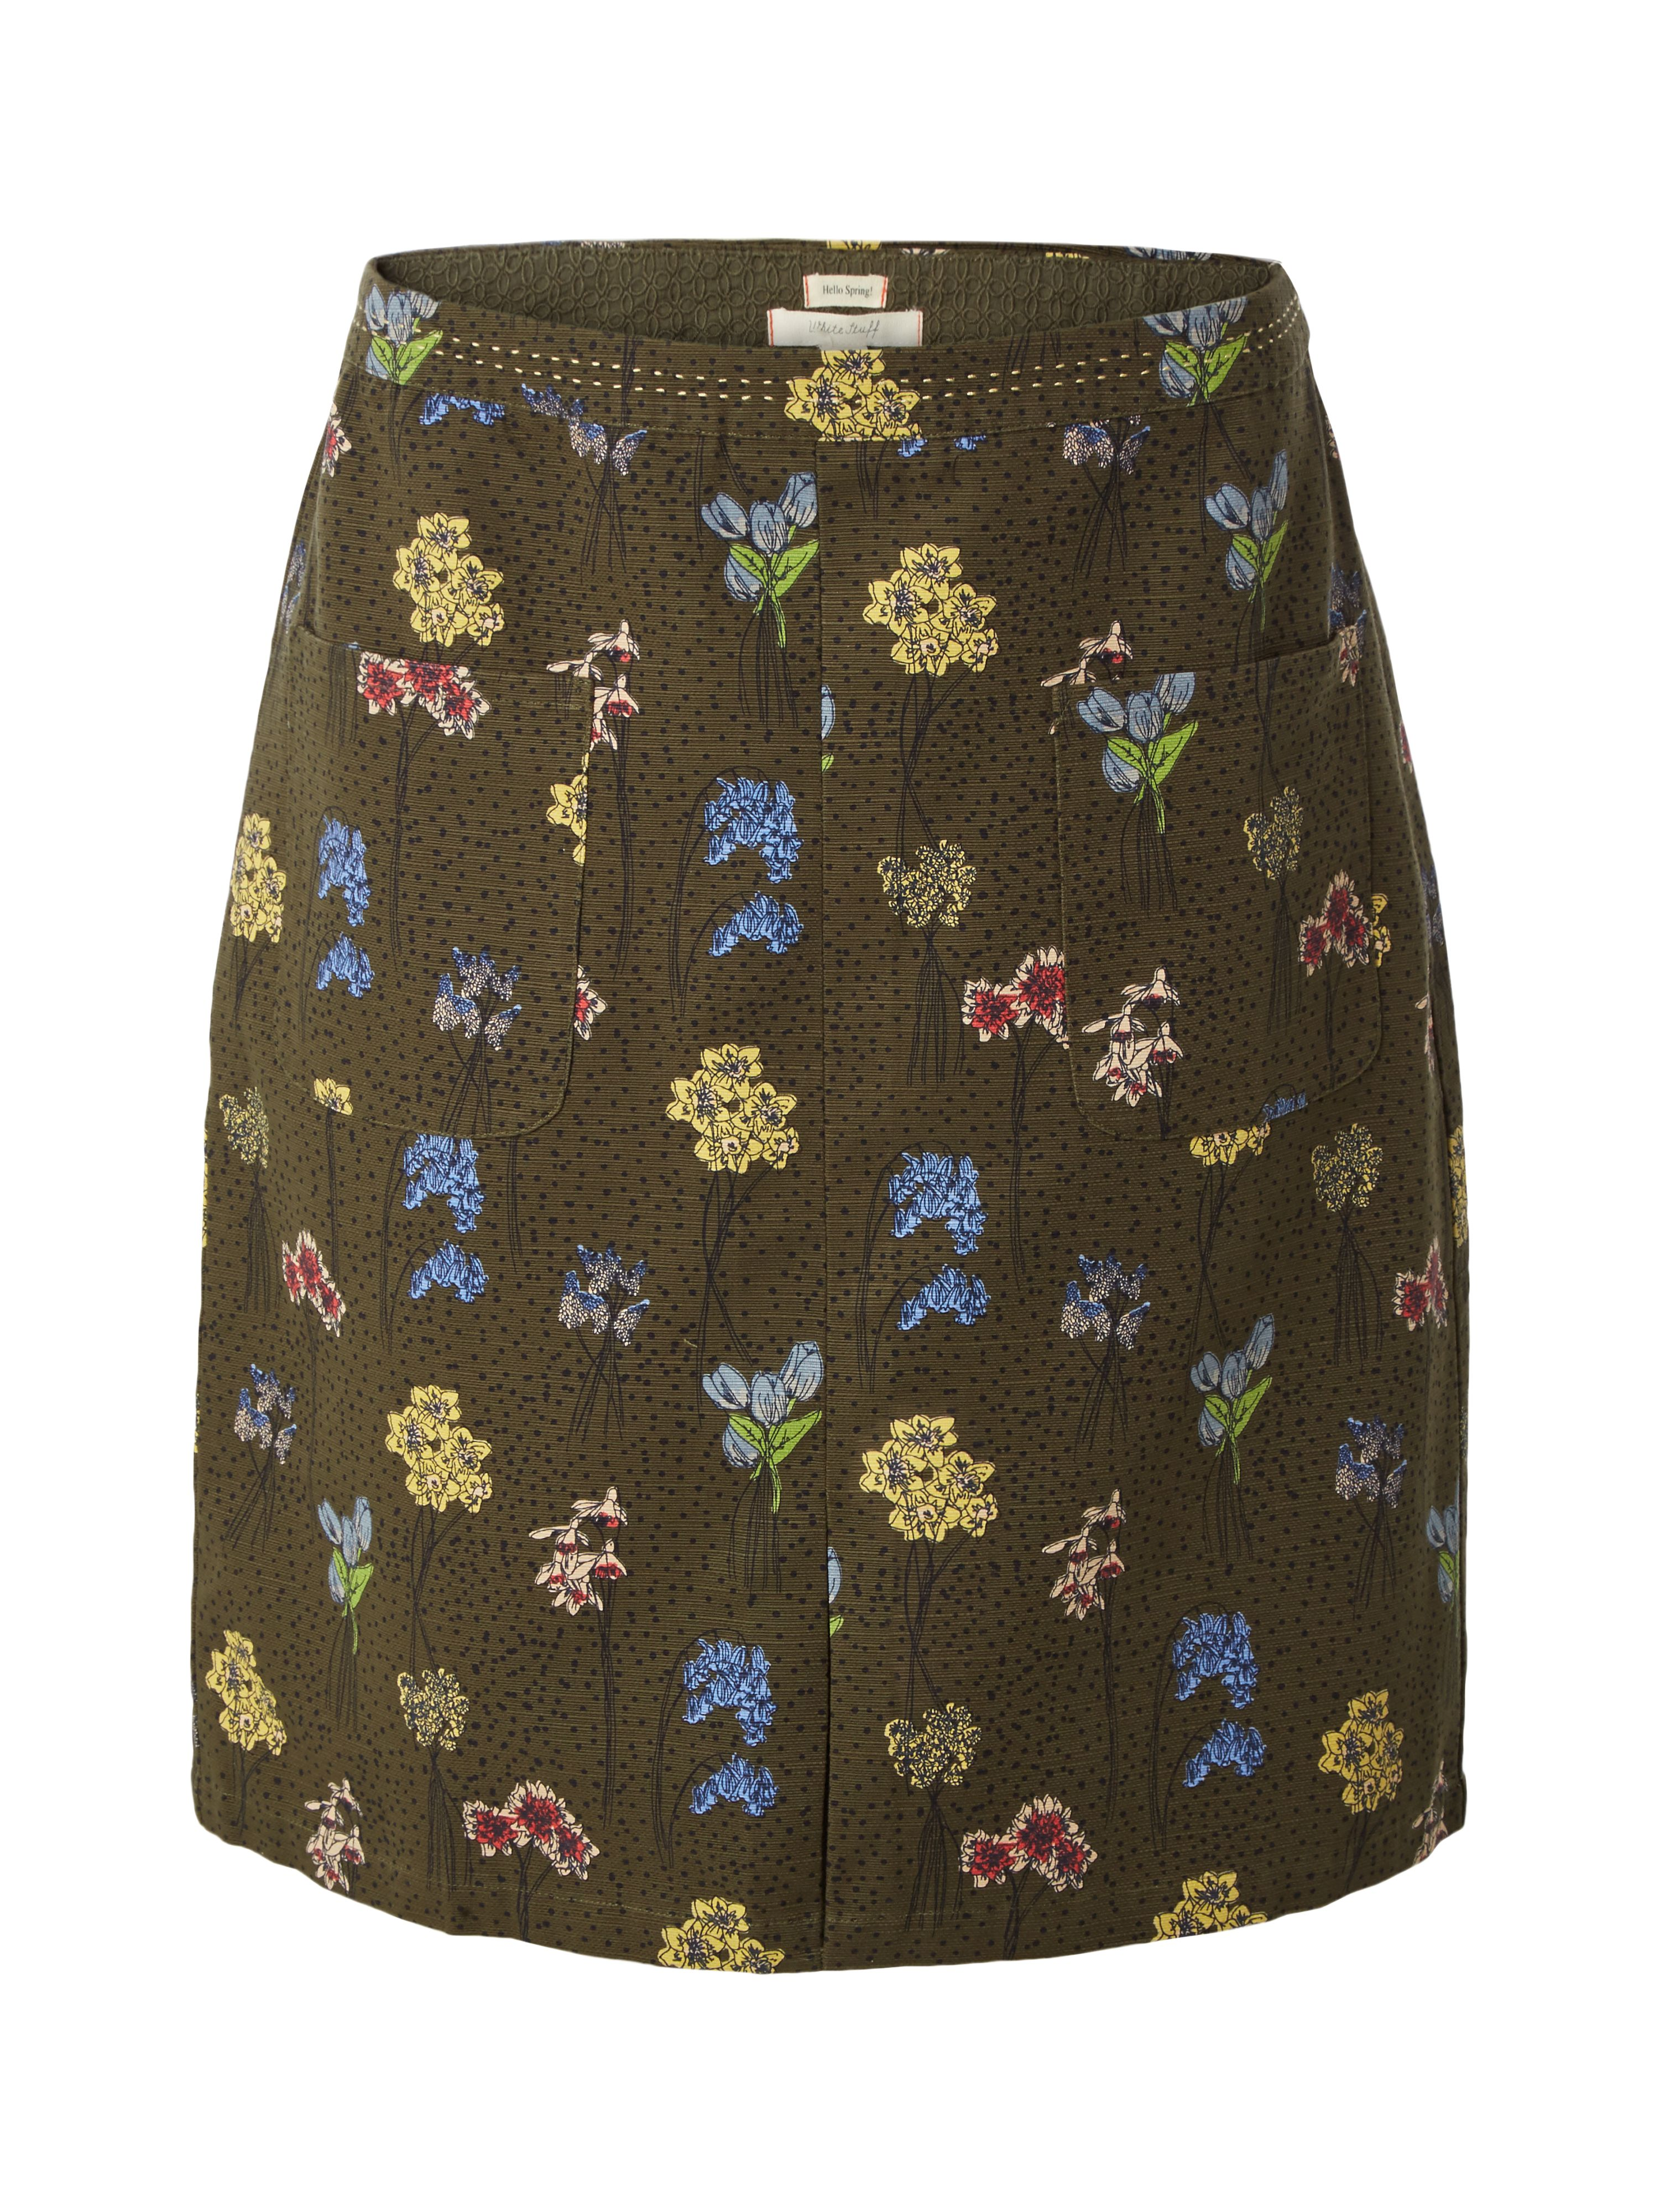 White Stuff Bluebell Skirt, Green